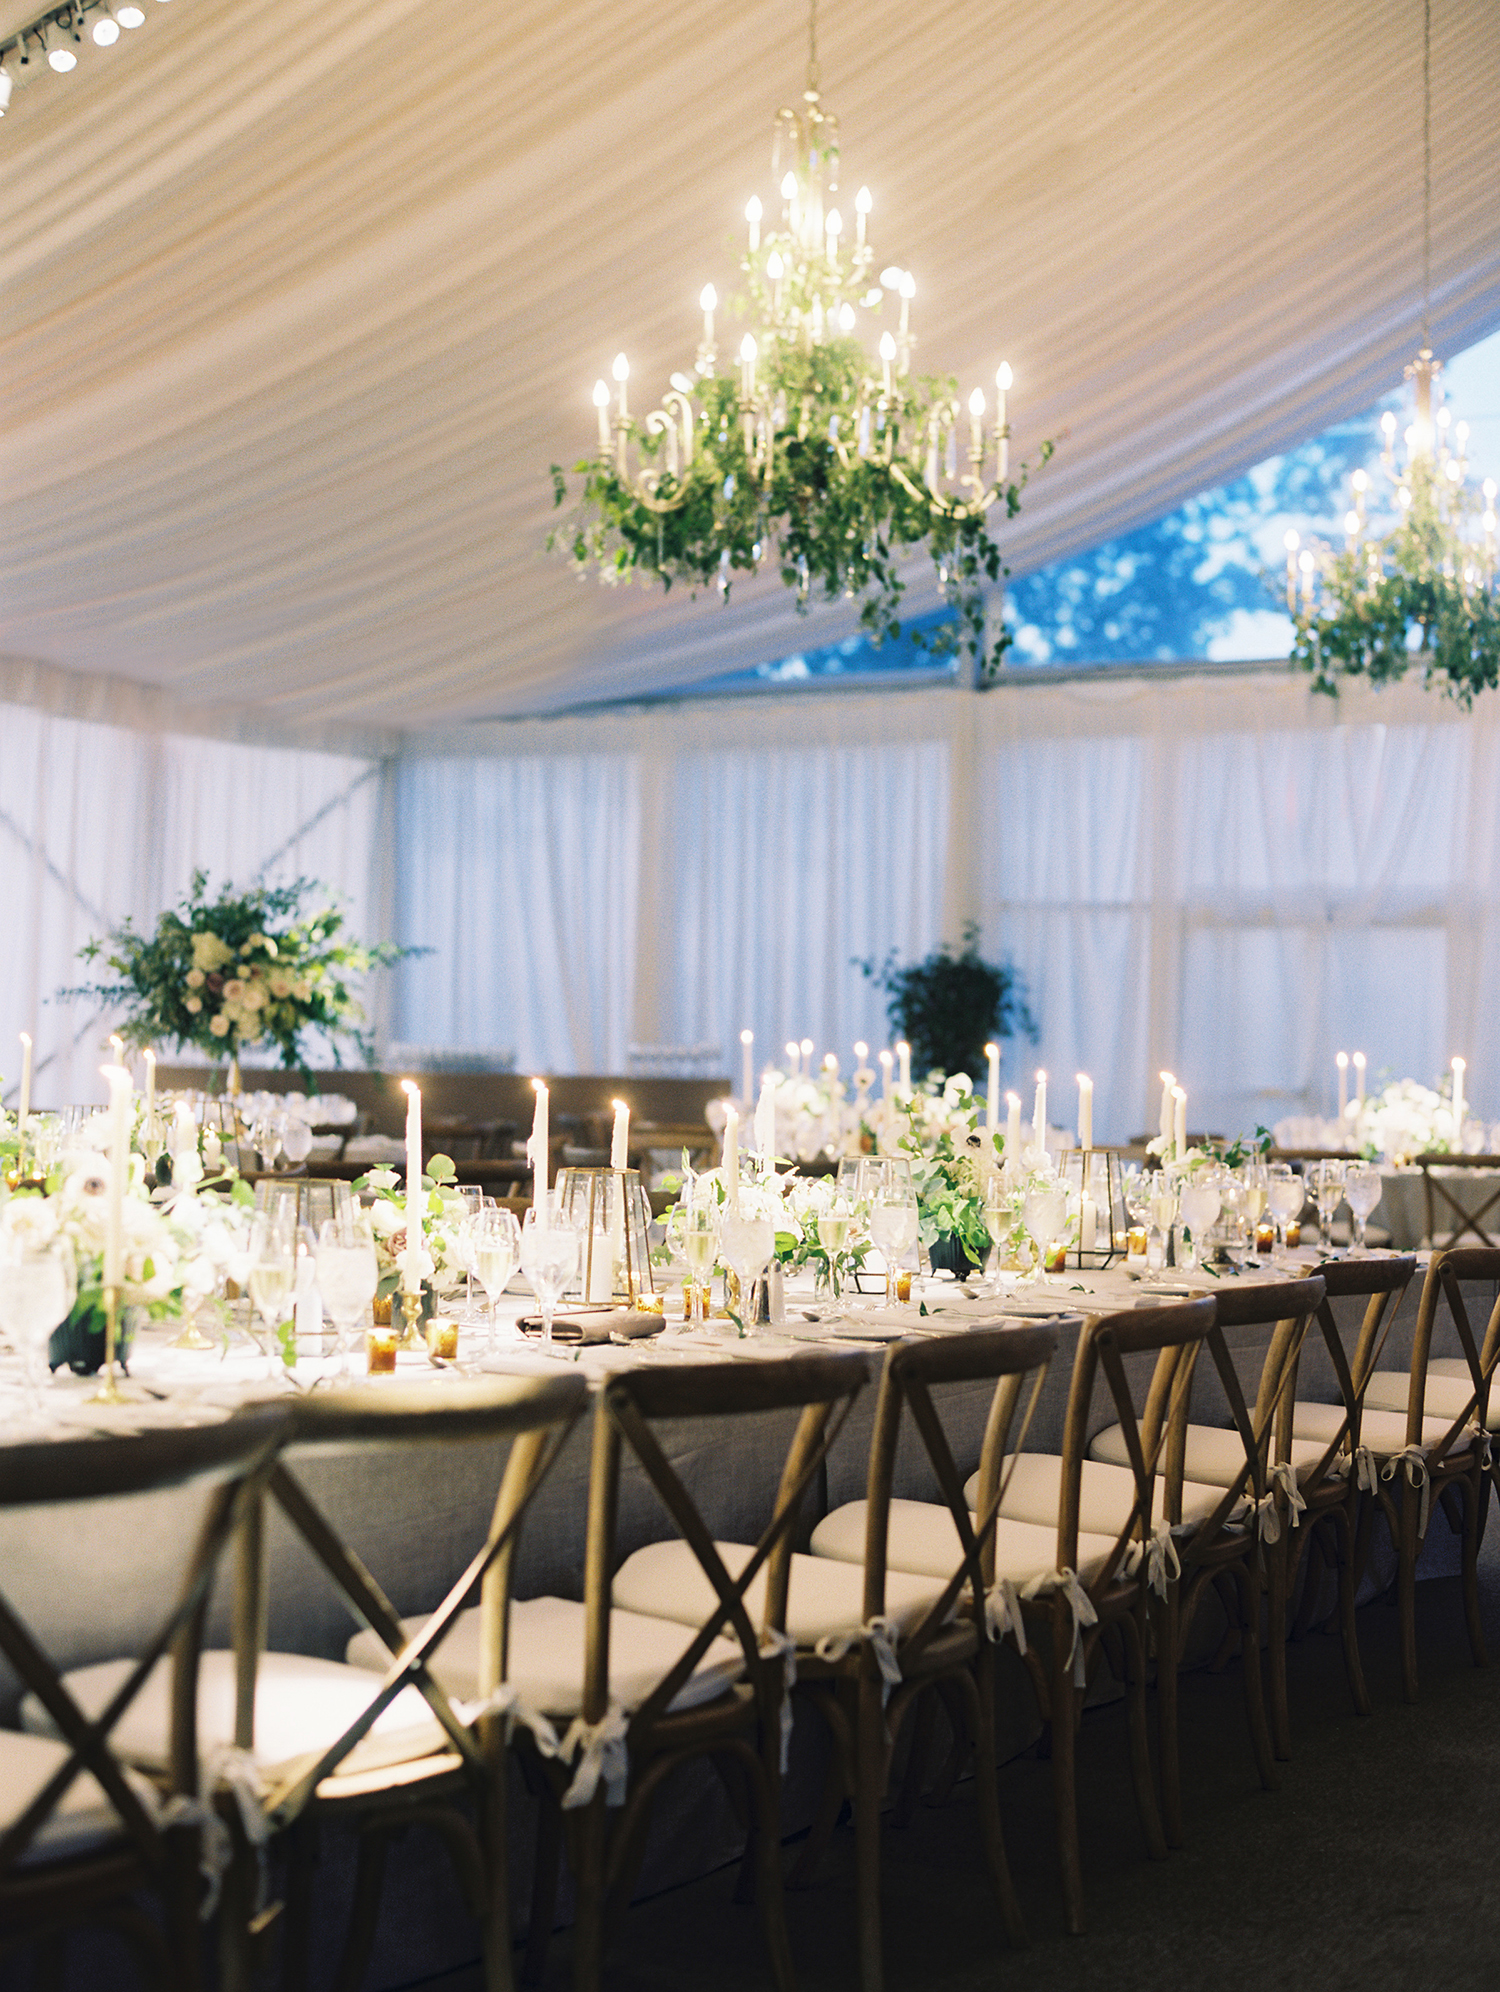 The Tented Reception